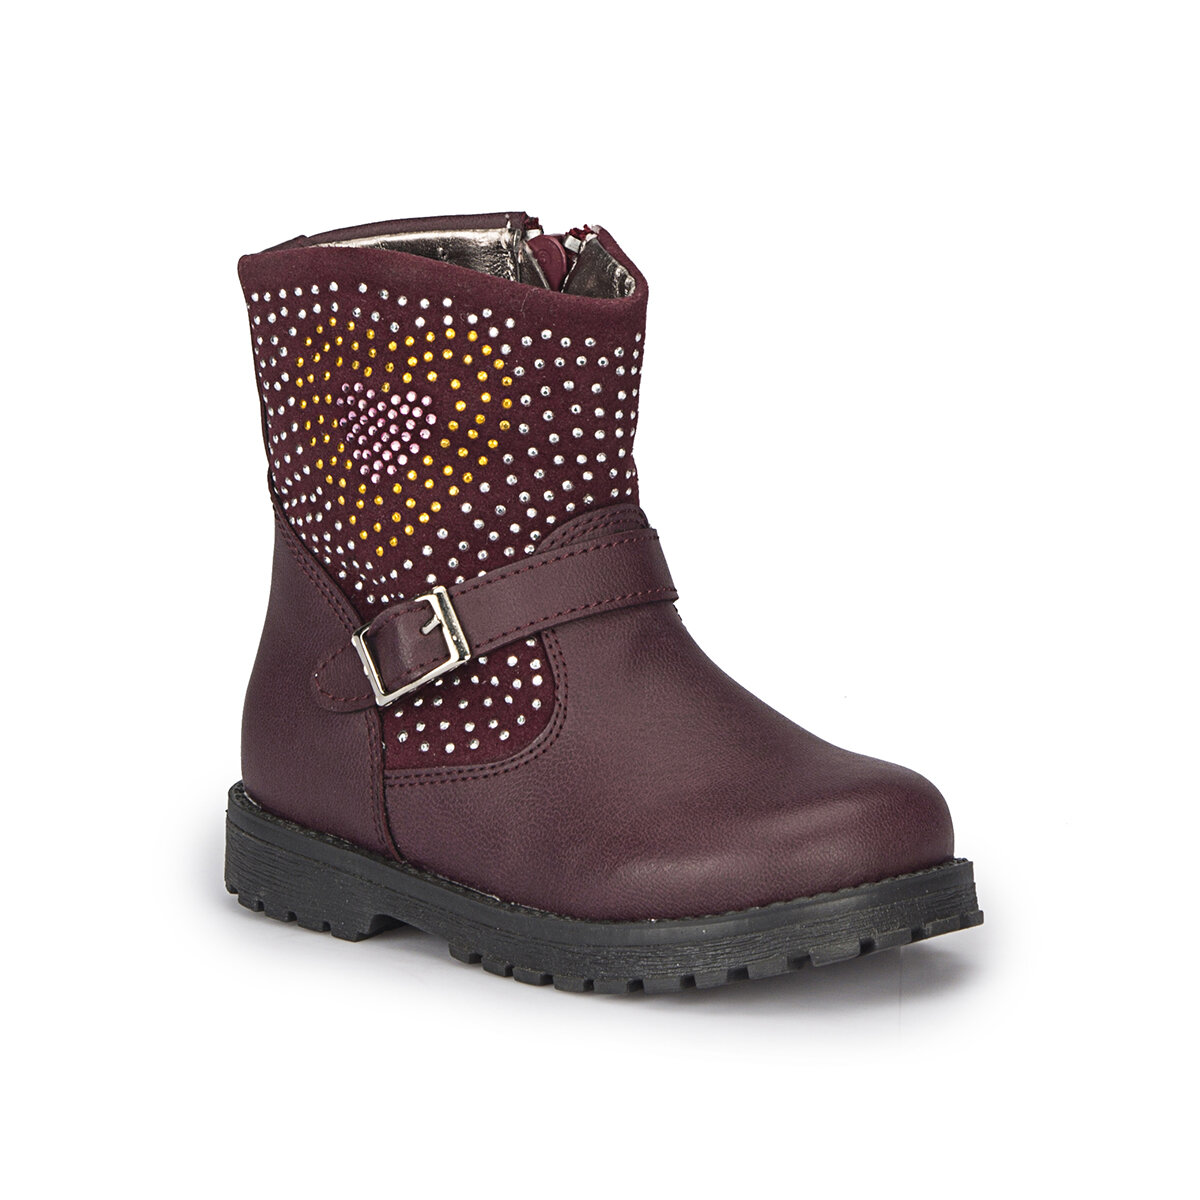 FLO ROZY-2 Burgundy Female Child Boots PINKSTEP